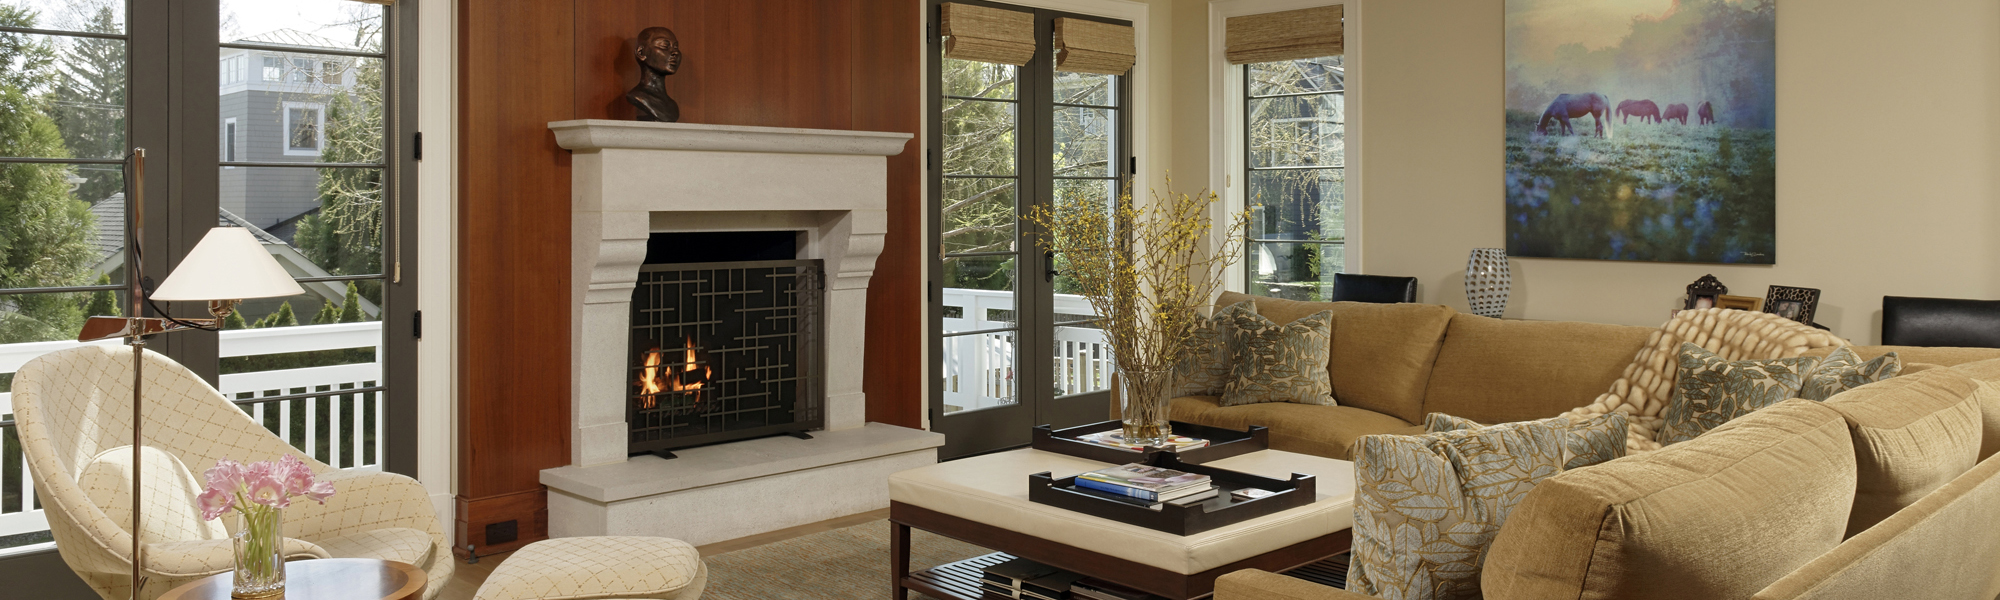 Chevy Chase MD Family Room